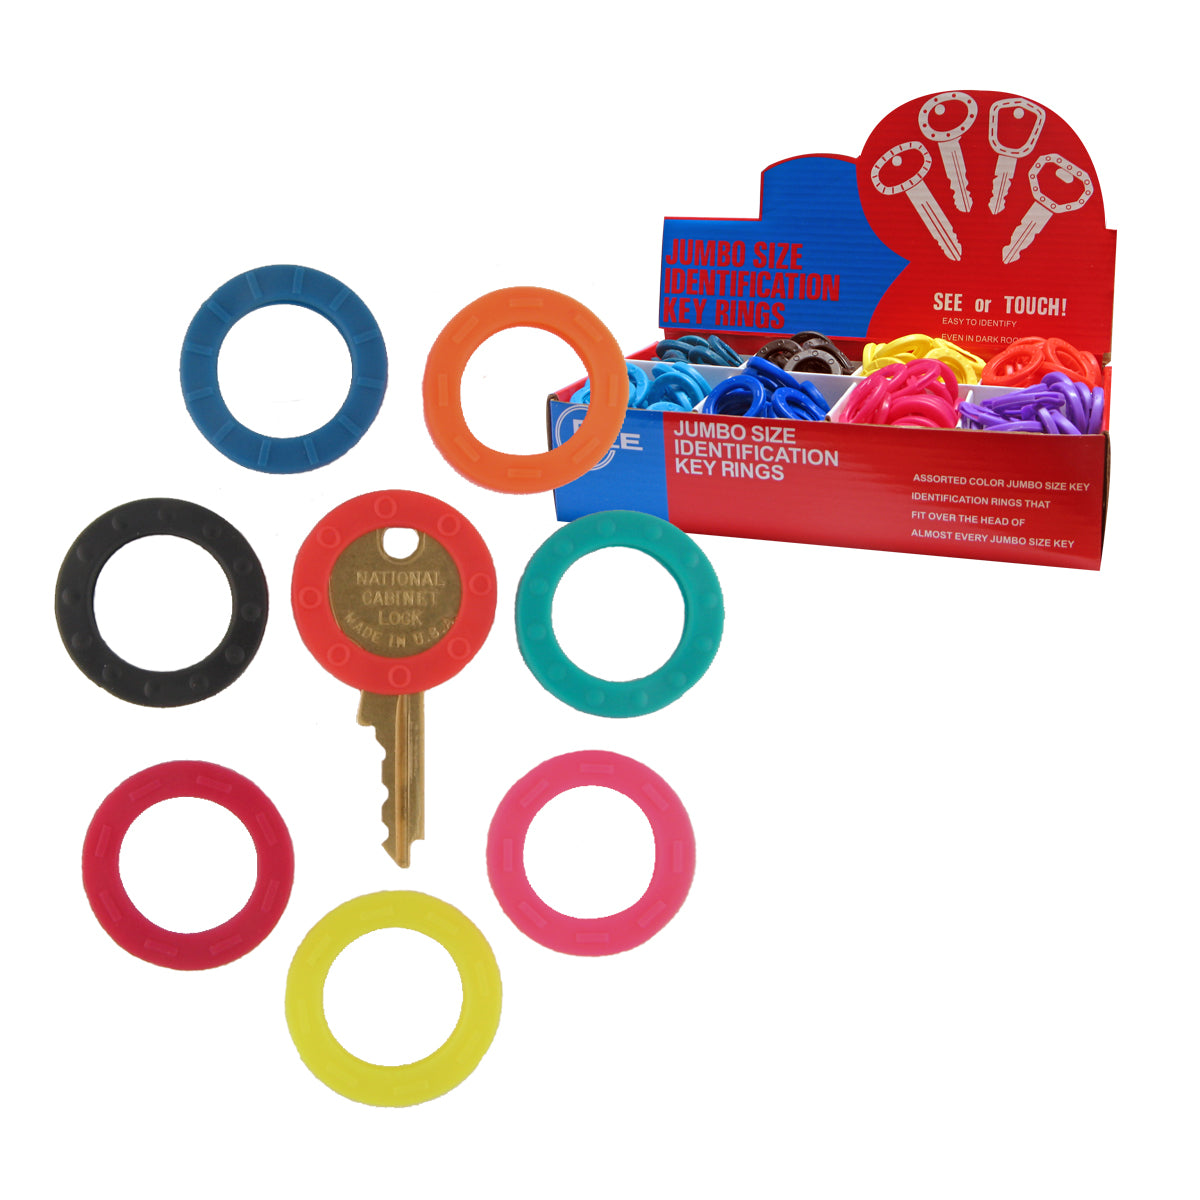 Large ID Key Rings (200 pc DISPLAY)